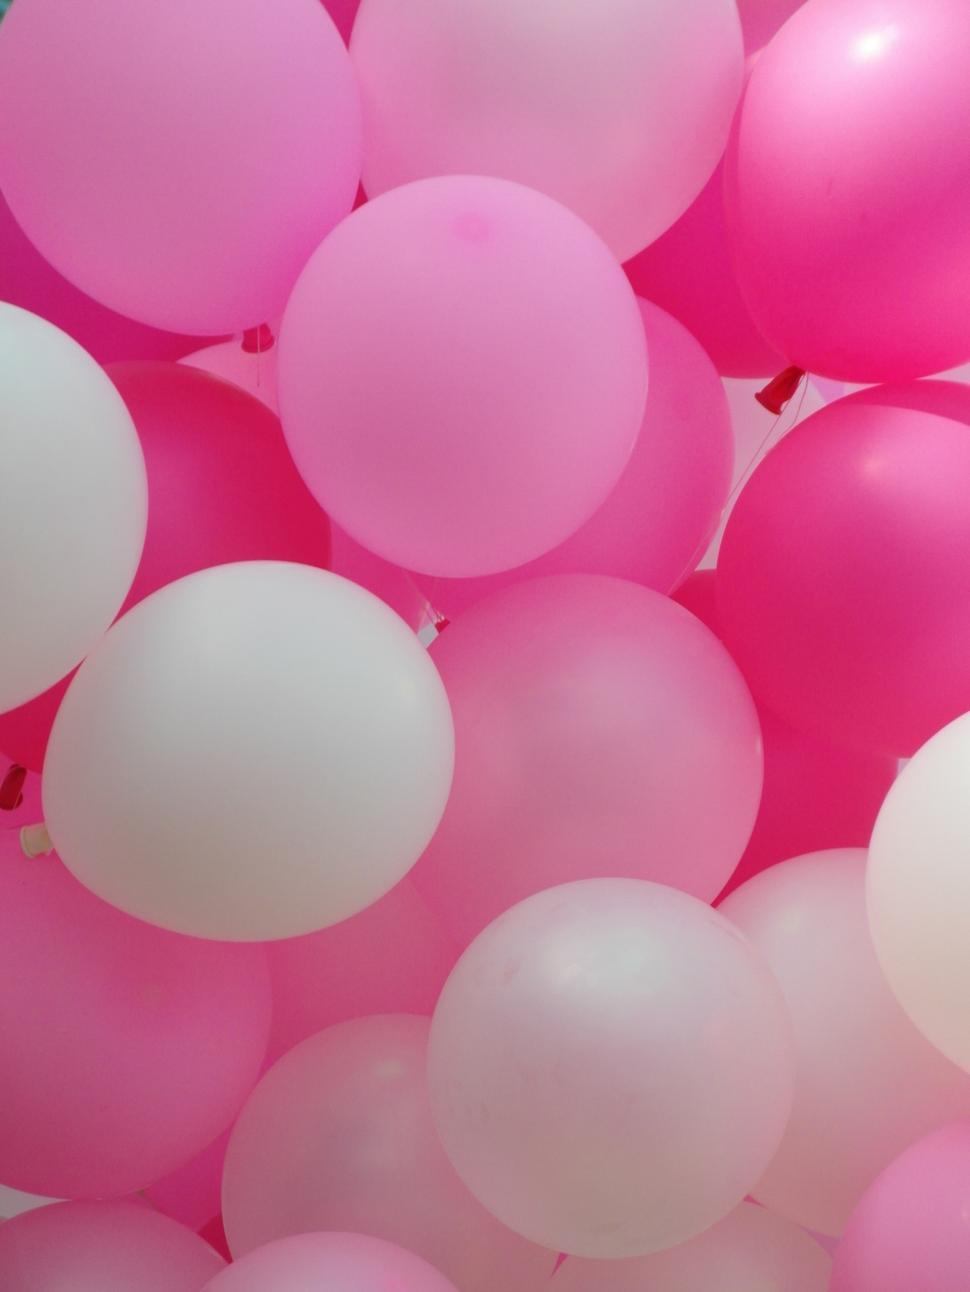 Download Free Stock HD Photo of Pink Balloons Online